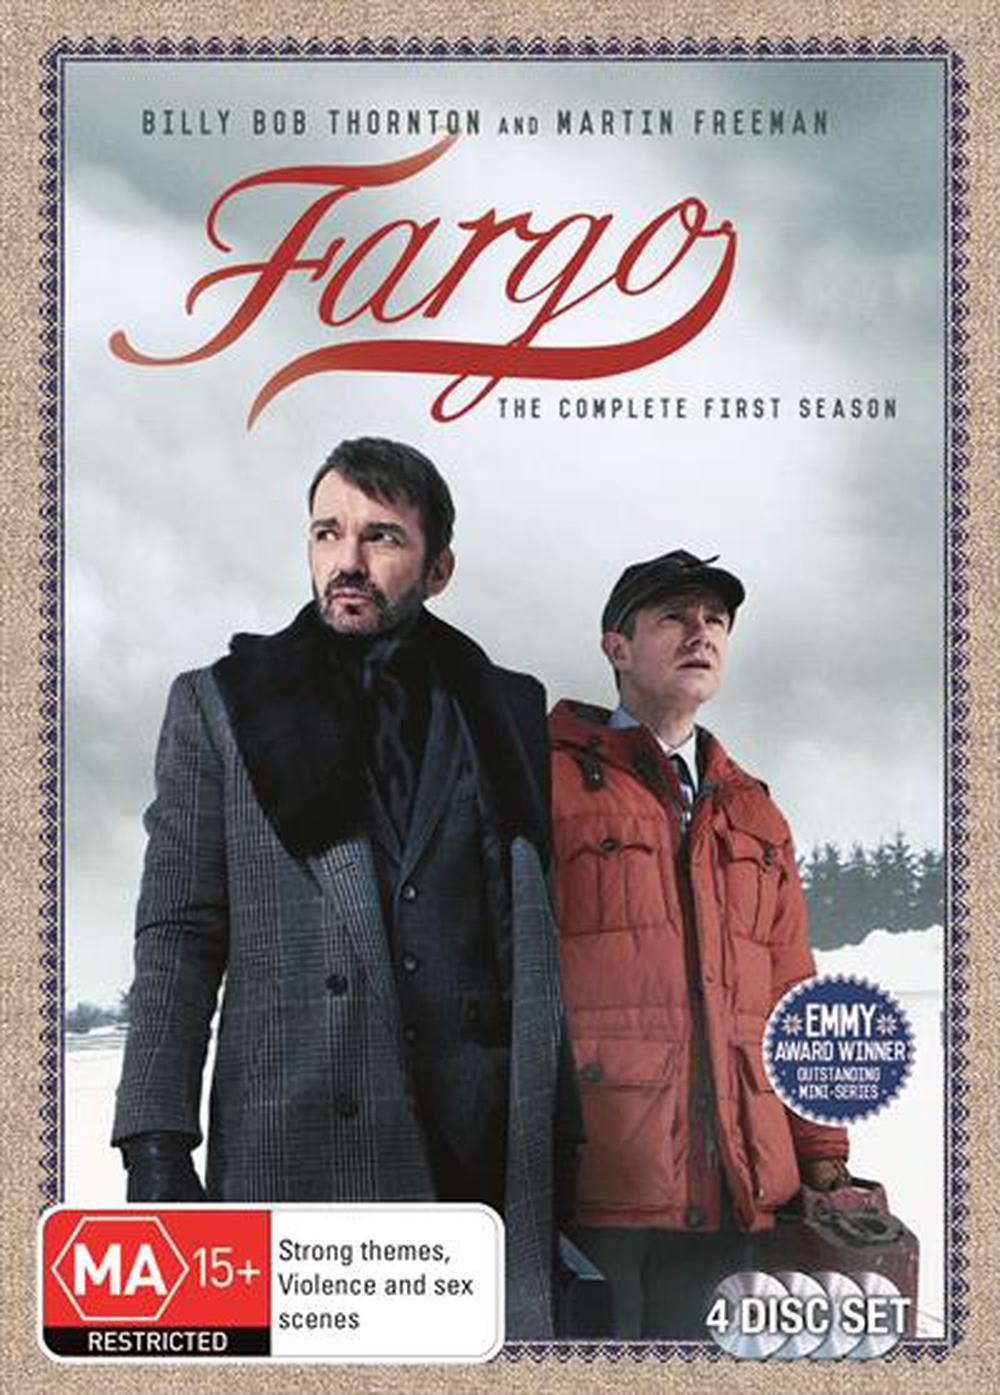 Fargo Season 1 Dvd Buy Online At The Nile